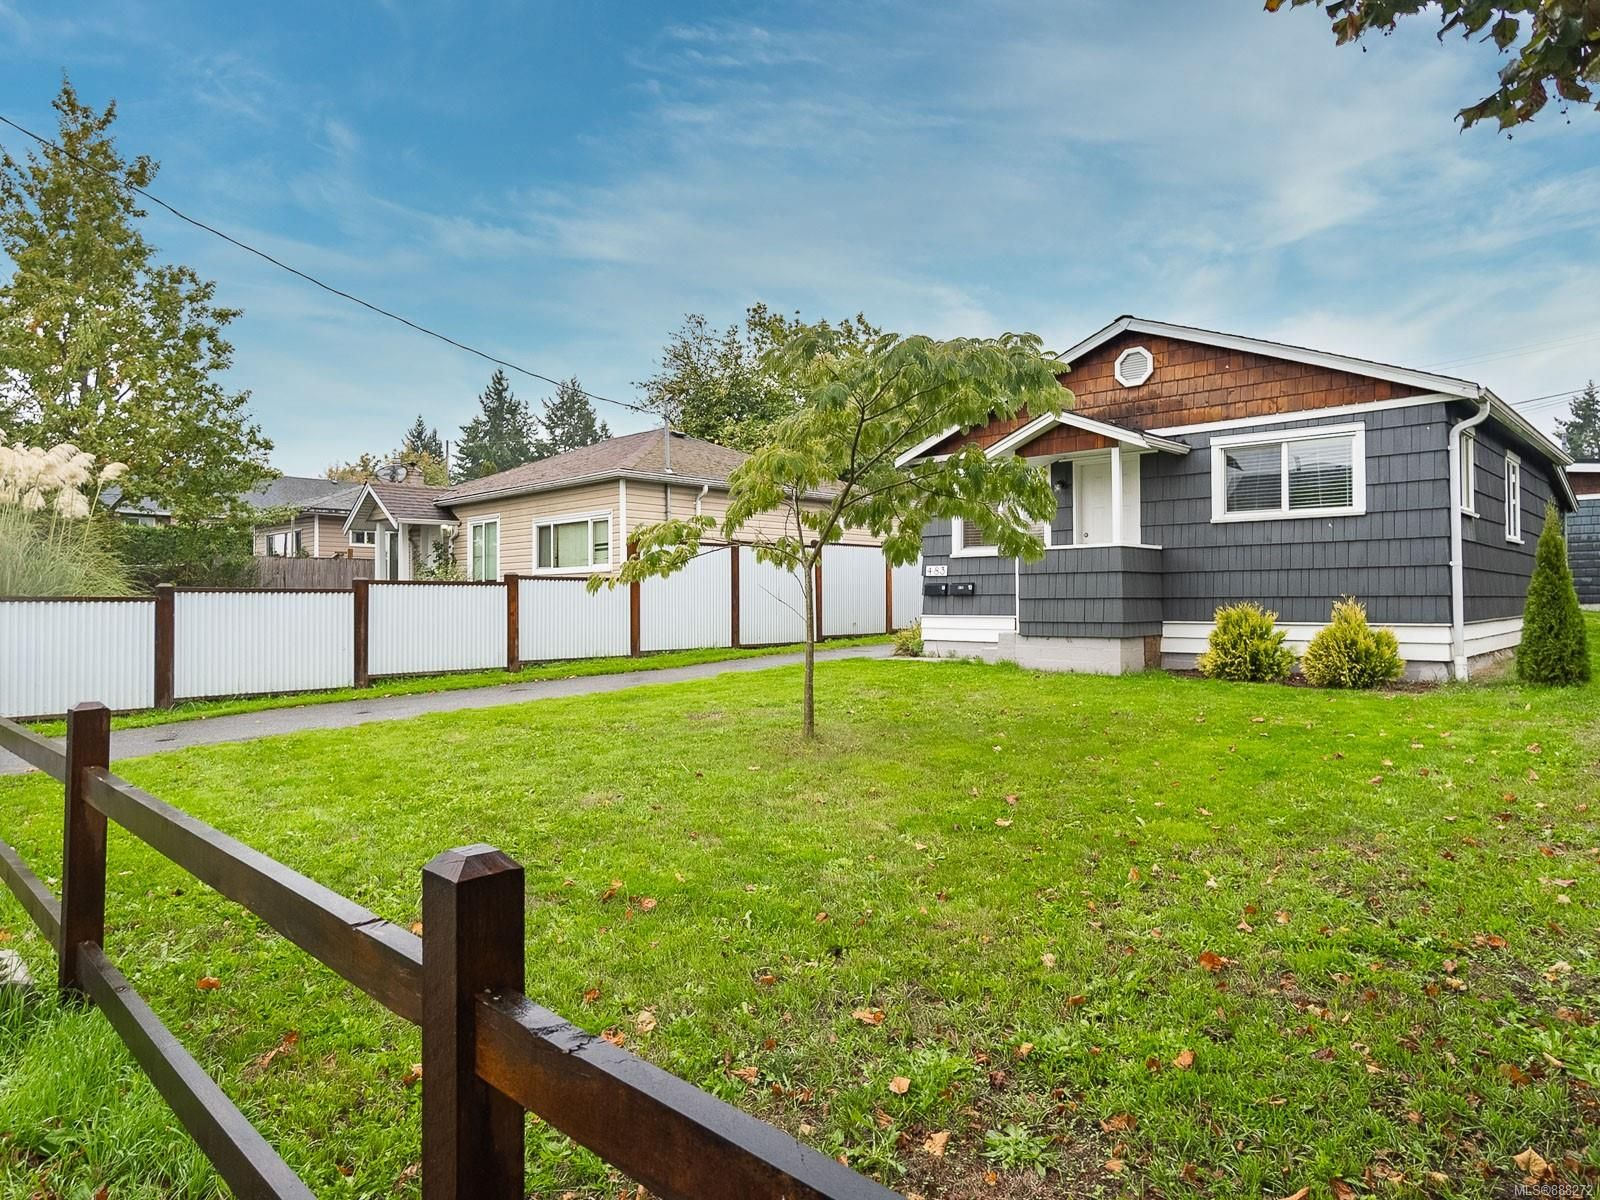 Main Photo: 483 Howard Ave in : Na University District House for sale (Nanaimo)  : MLS®# 888272